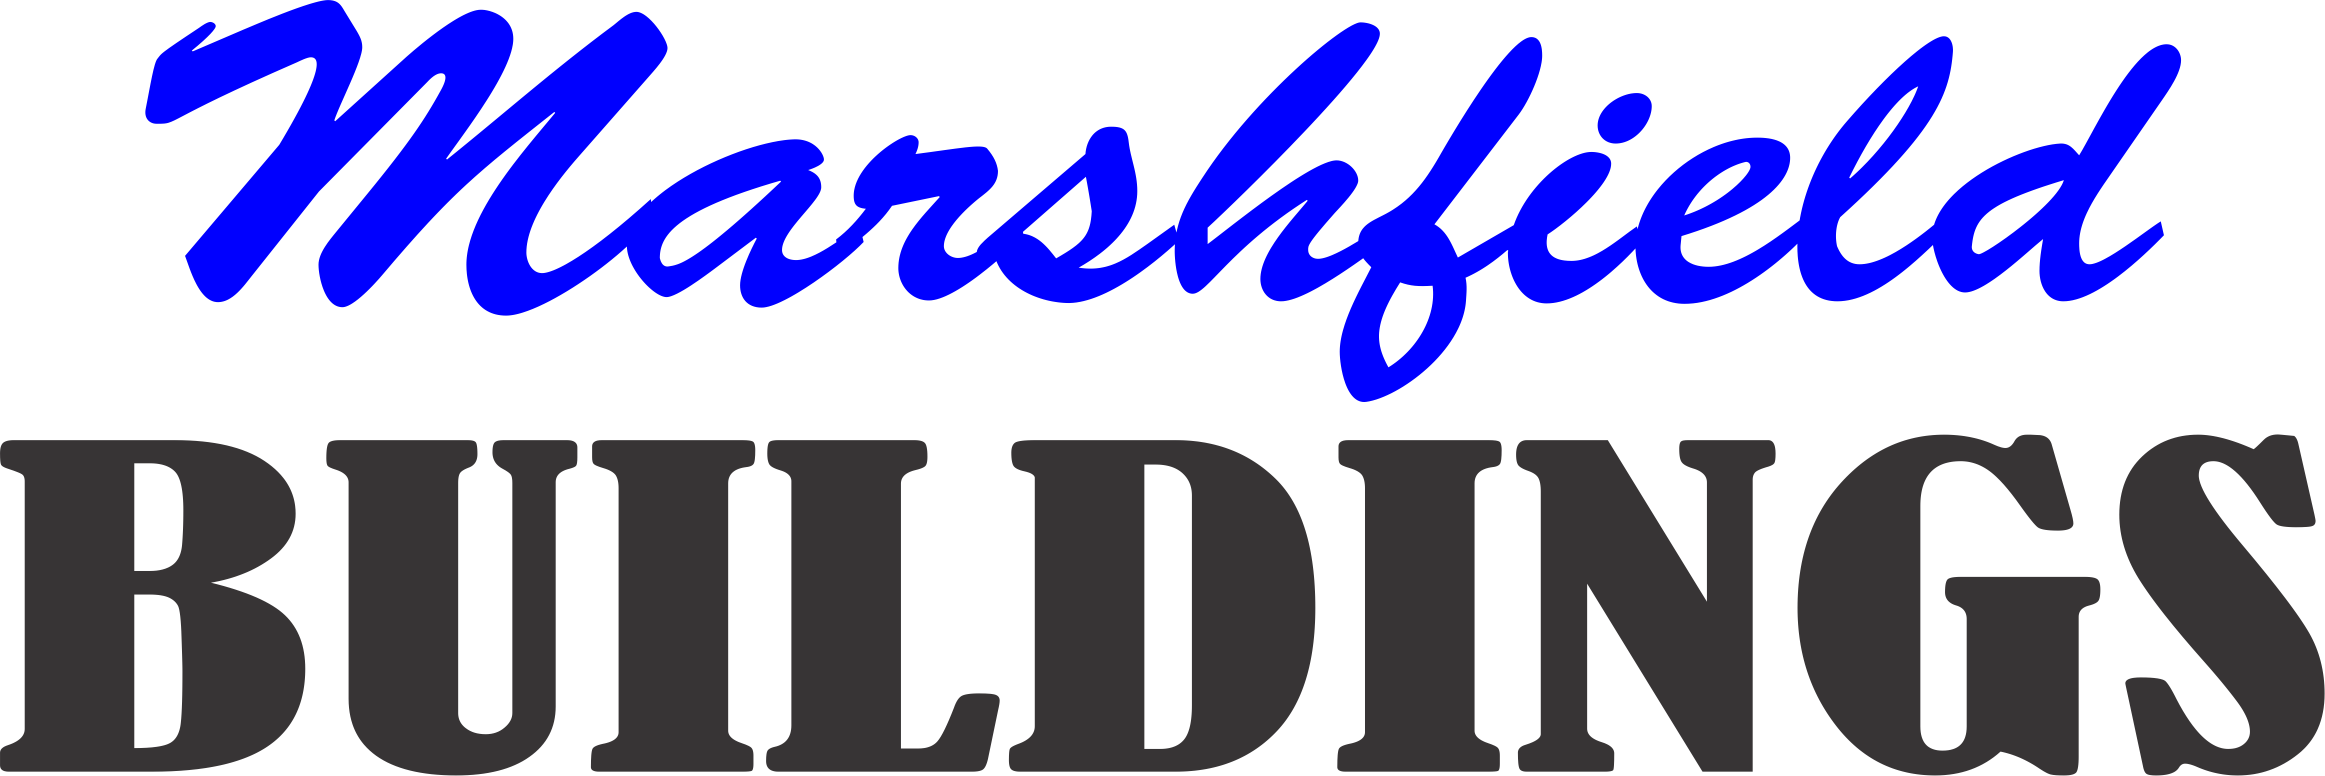 MARSHFIELD BUILDINGS LOGO.png